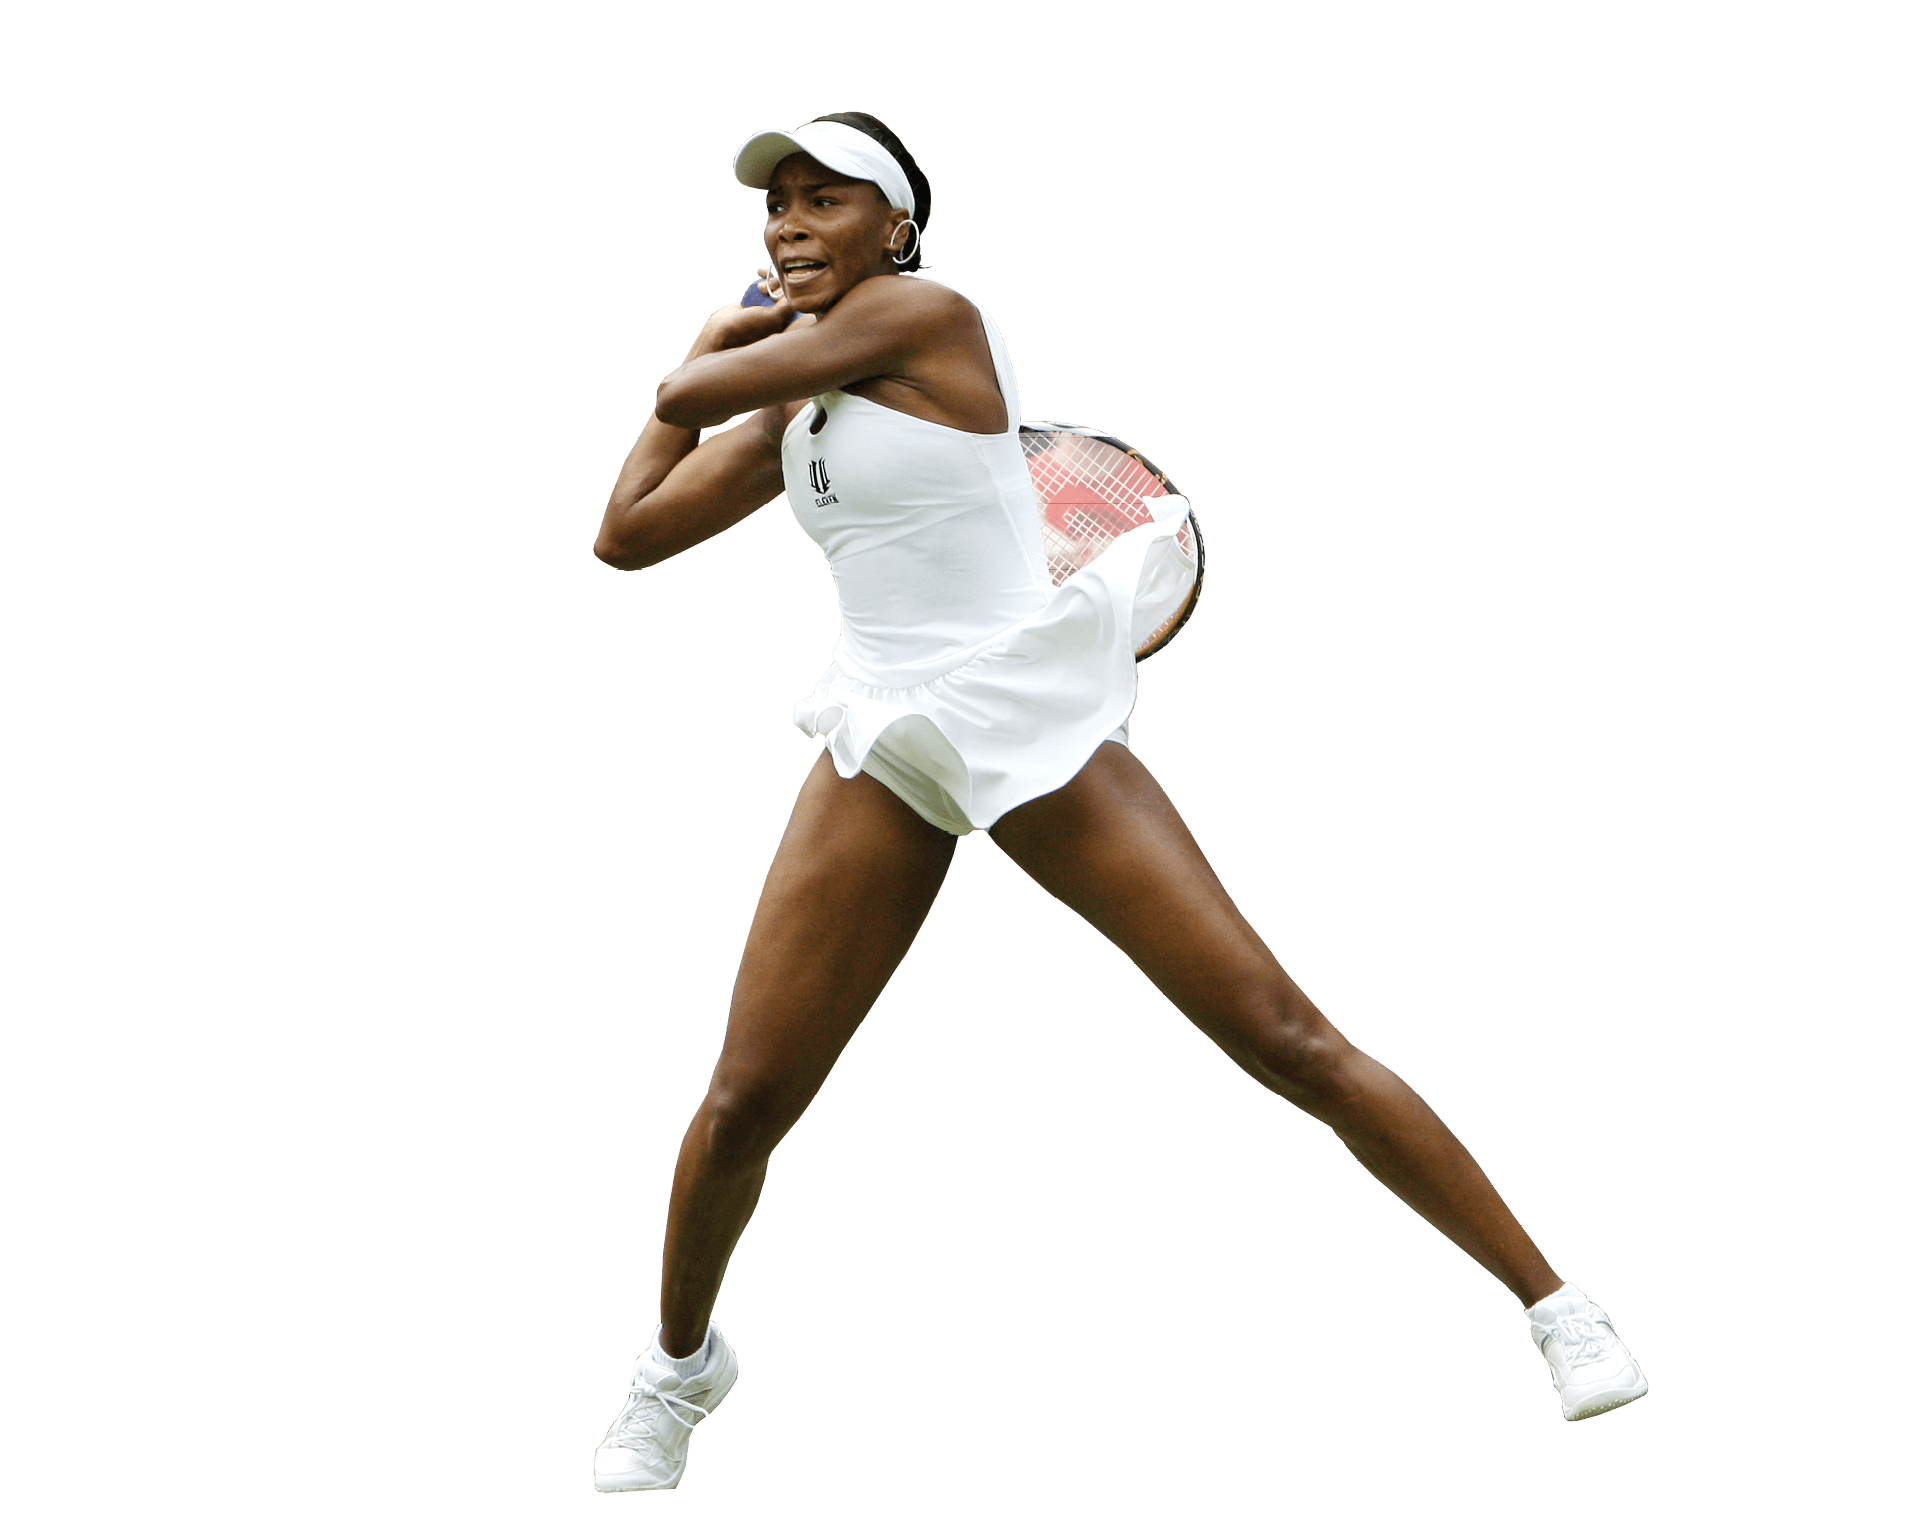 Tennis player woman PNG image